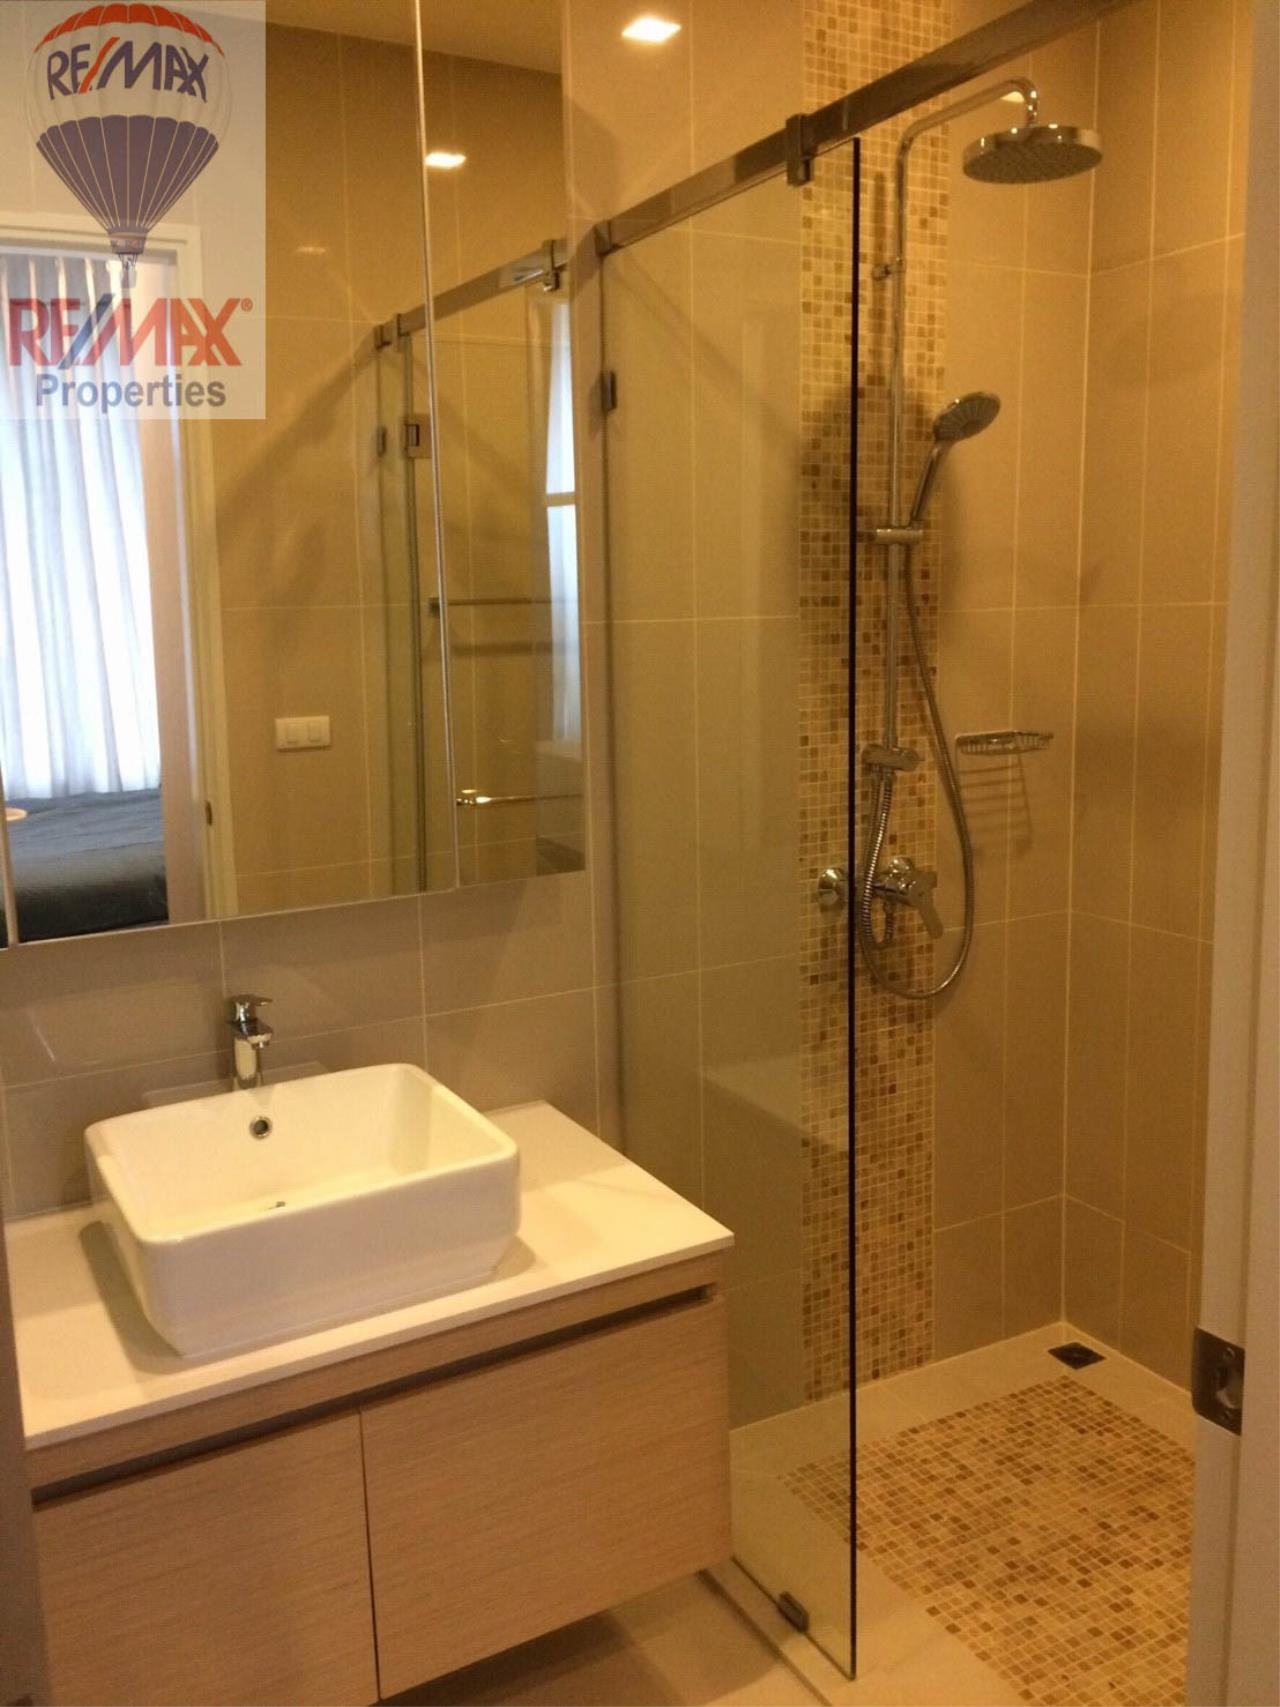 RE/MAX Properties Agency's Q Asoke 1 Bedroom For Rent 7